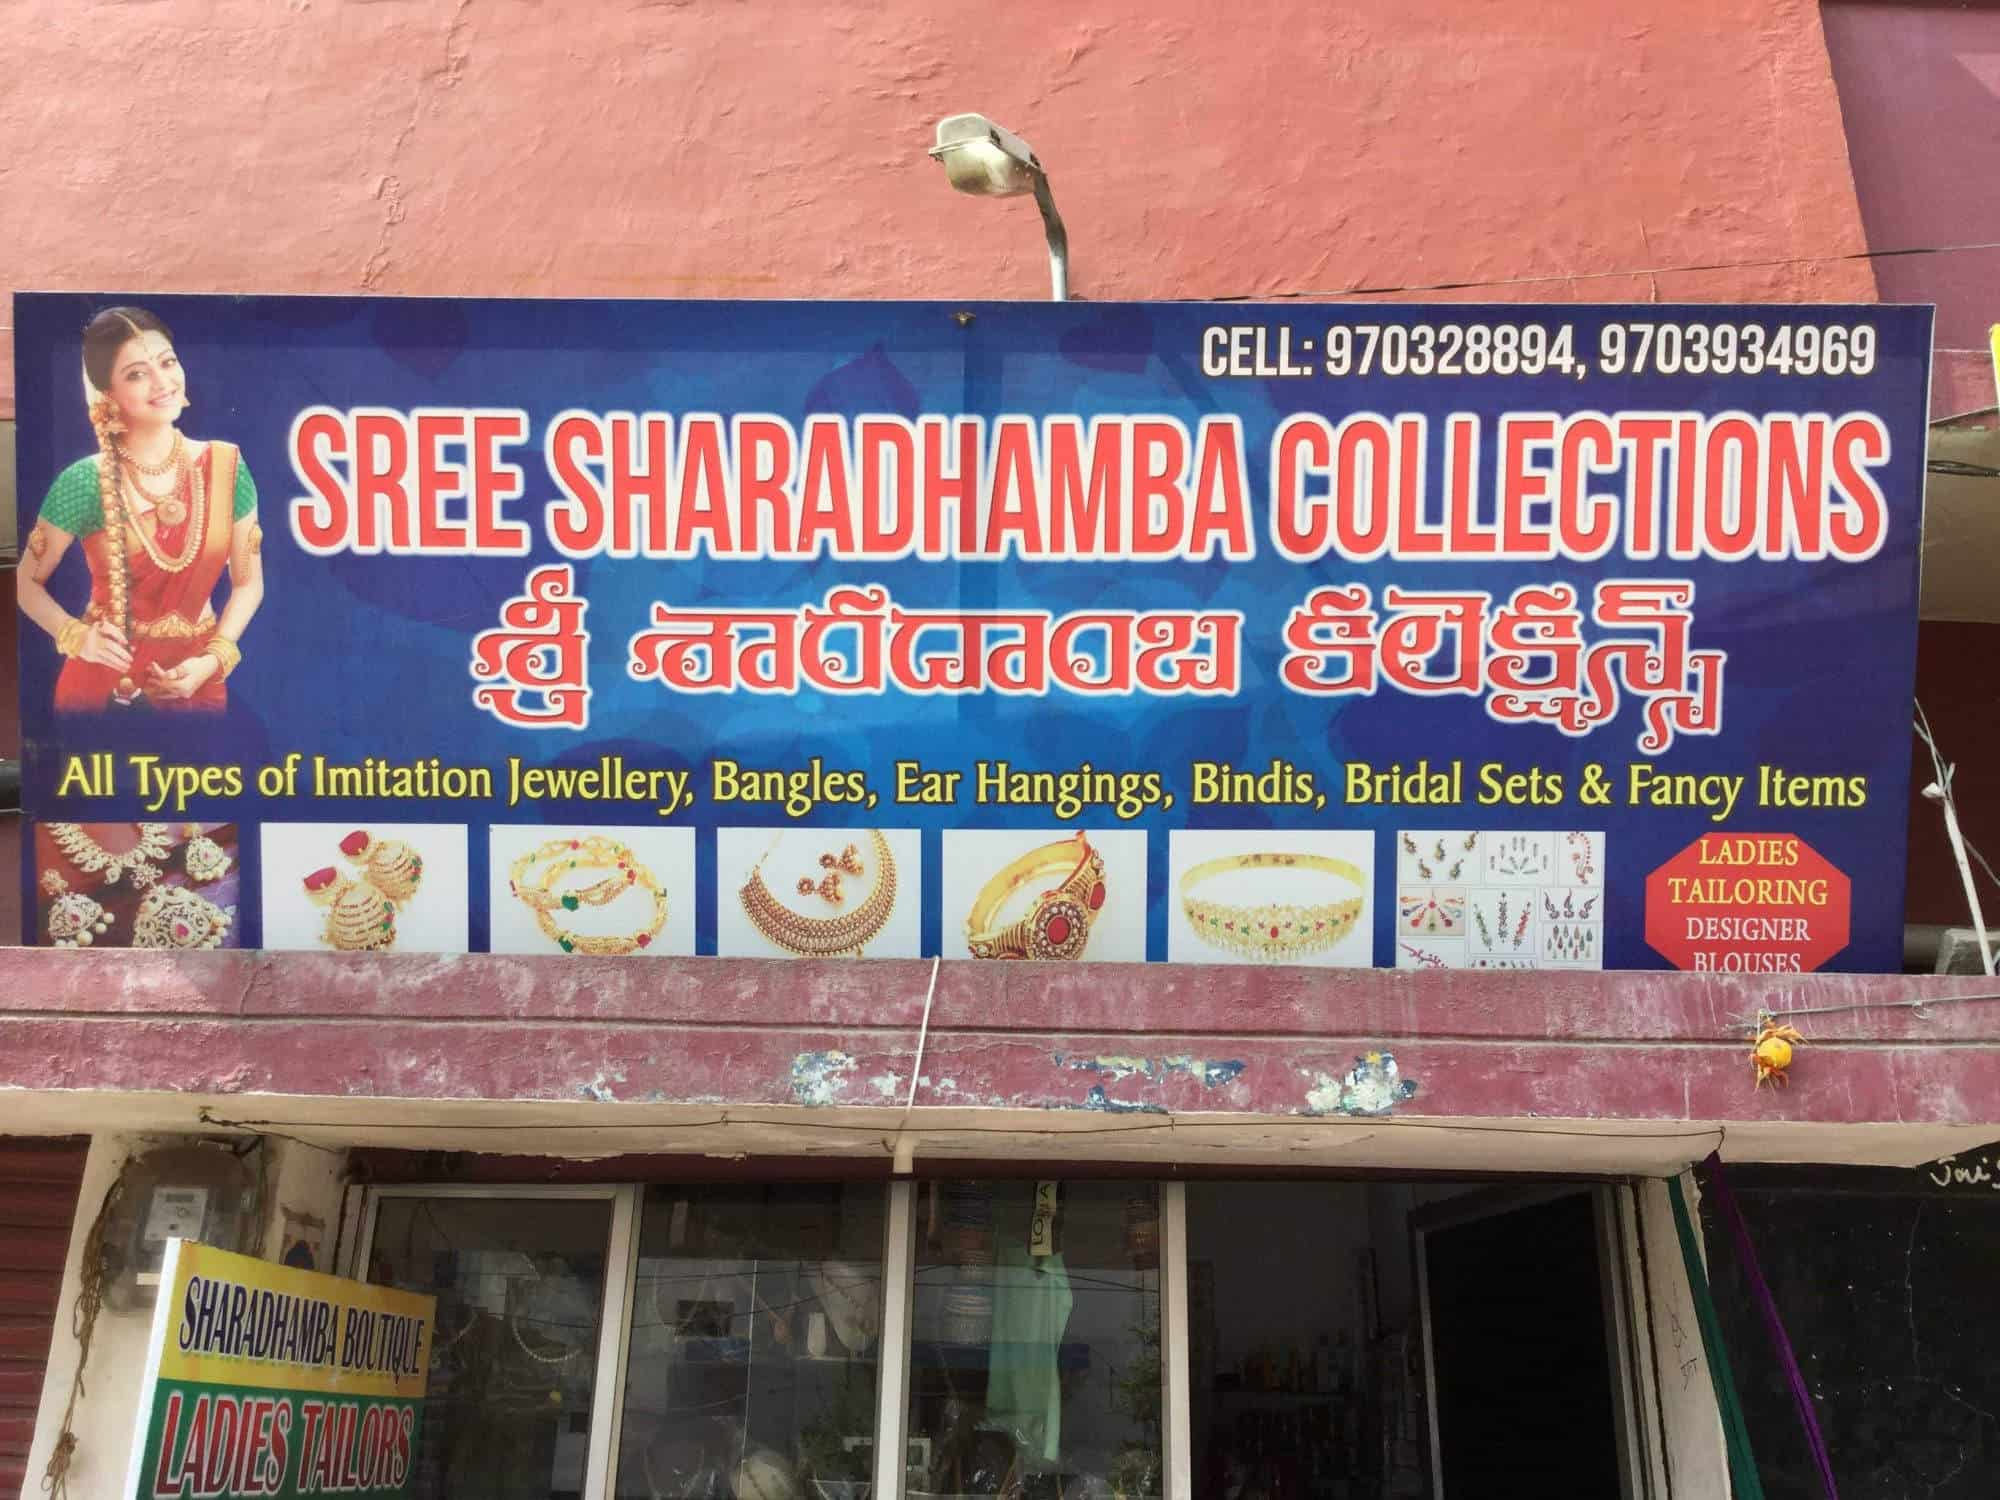 eb4d379bc9f6d Sree Sharadamba Collections, Tarnaka - Cosmetic Dealers in Hyderabad ...